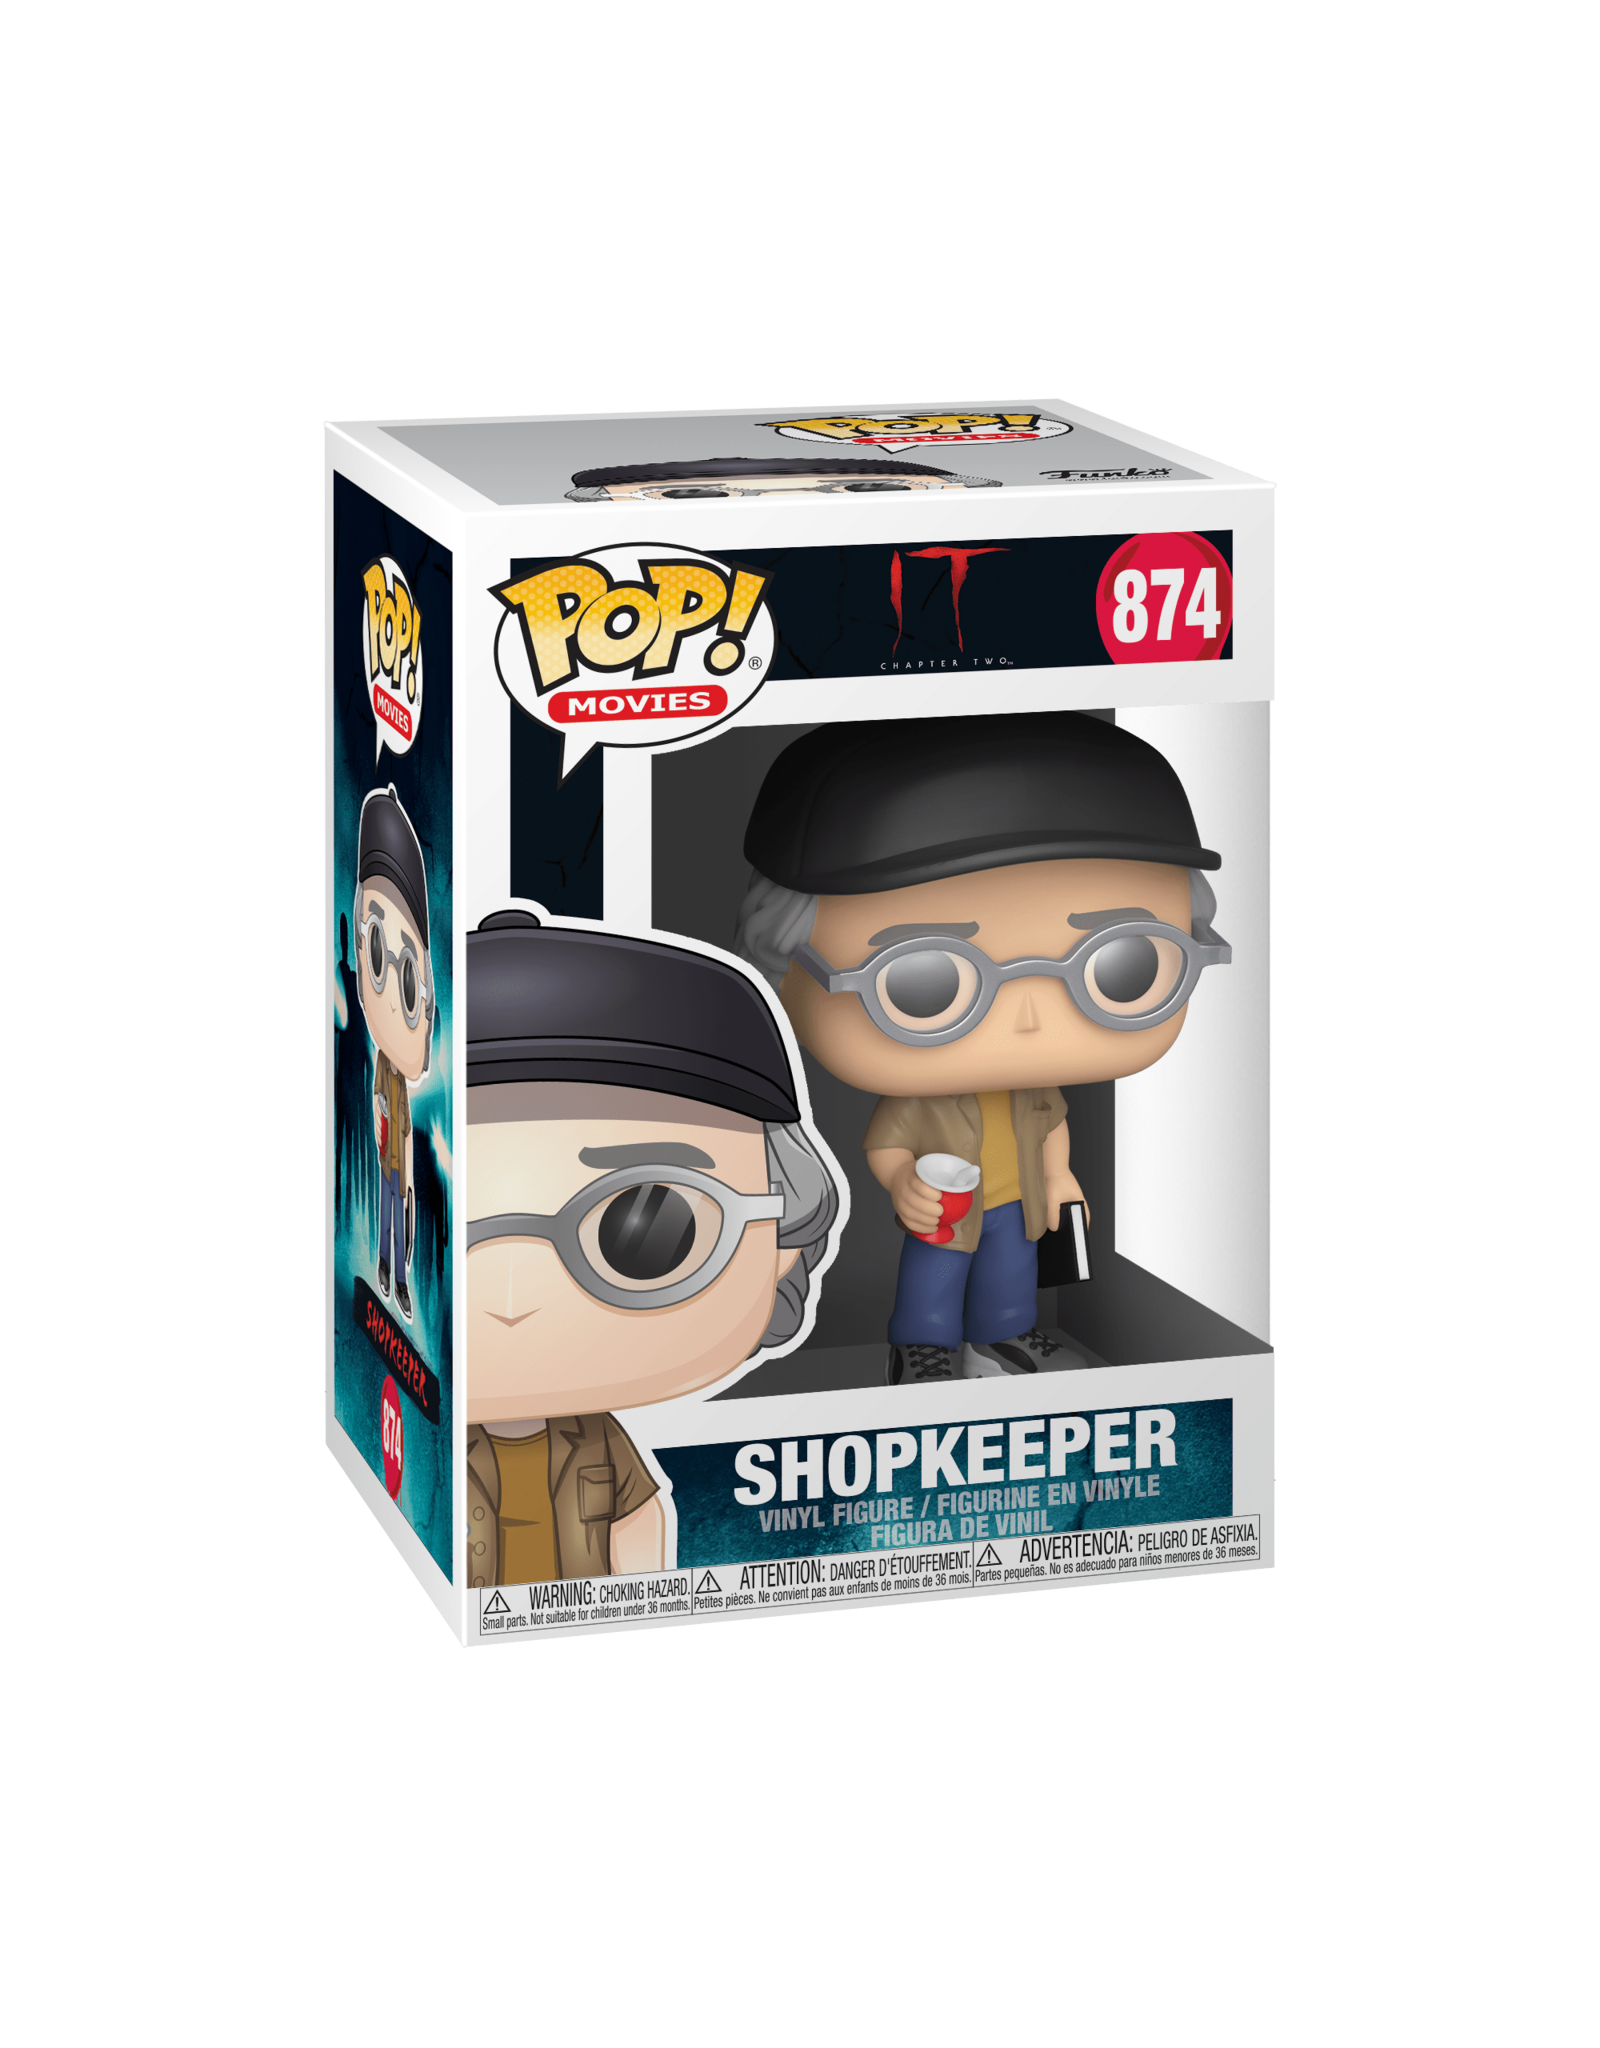 FUNKO POP MOVIES IT 2 SHOPKEEPER (STEPHEN KING)